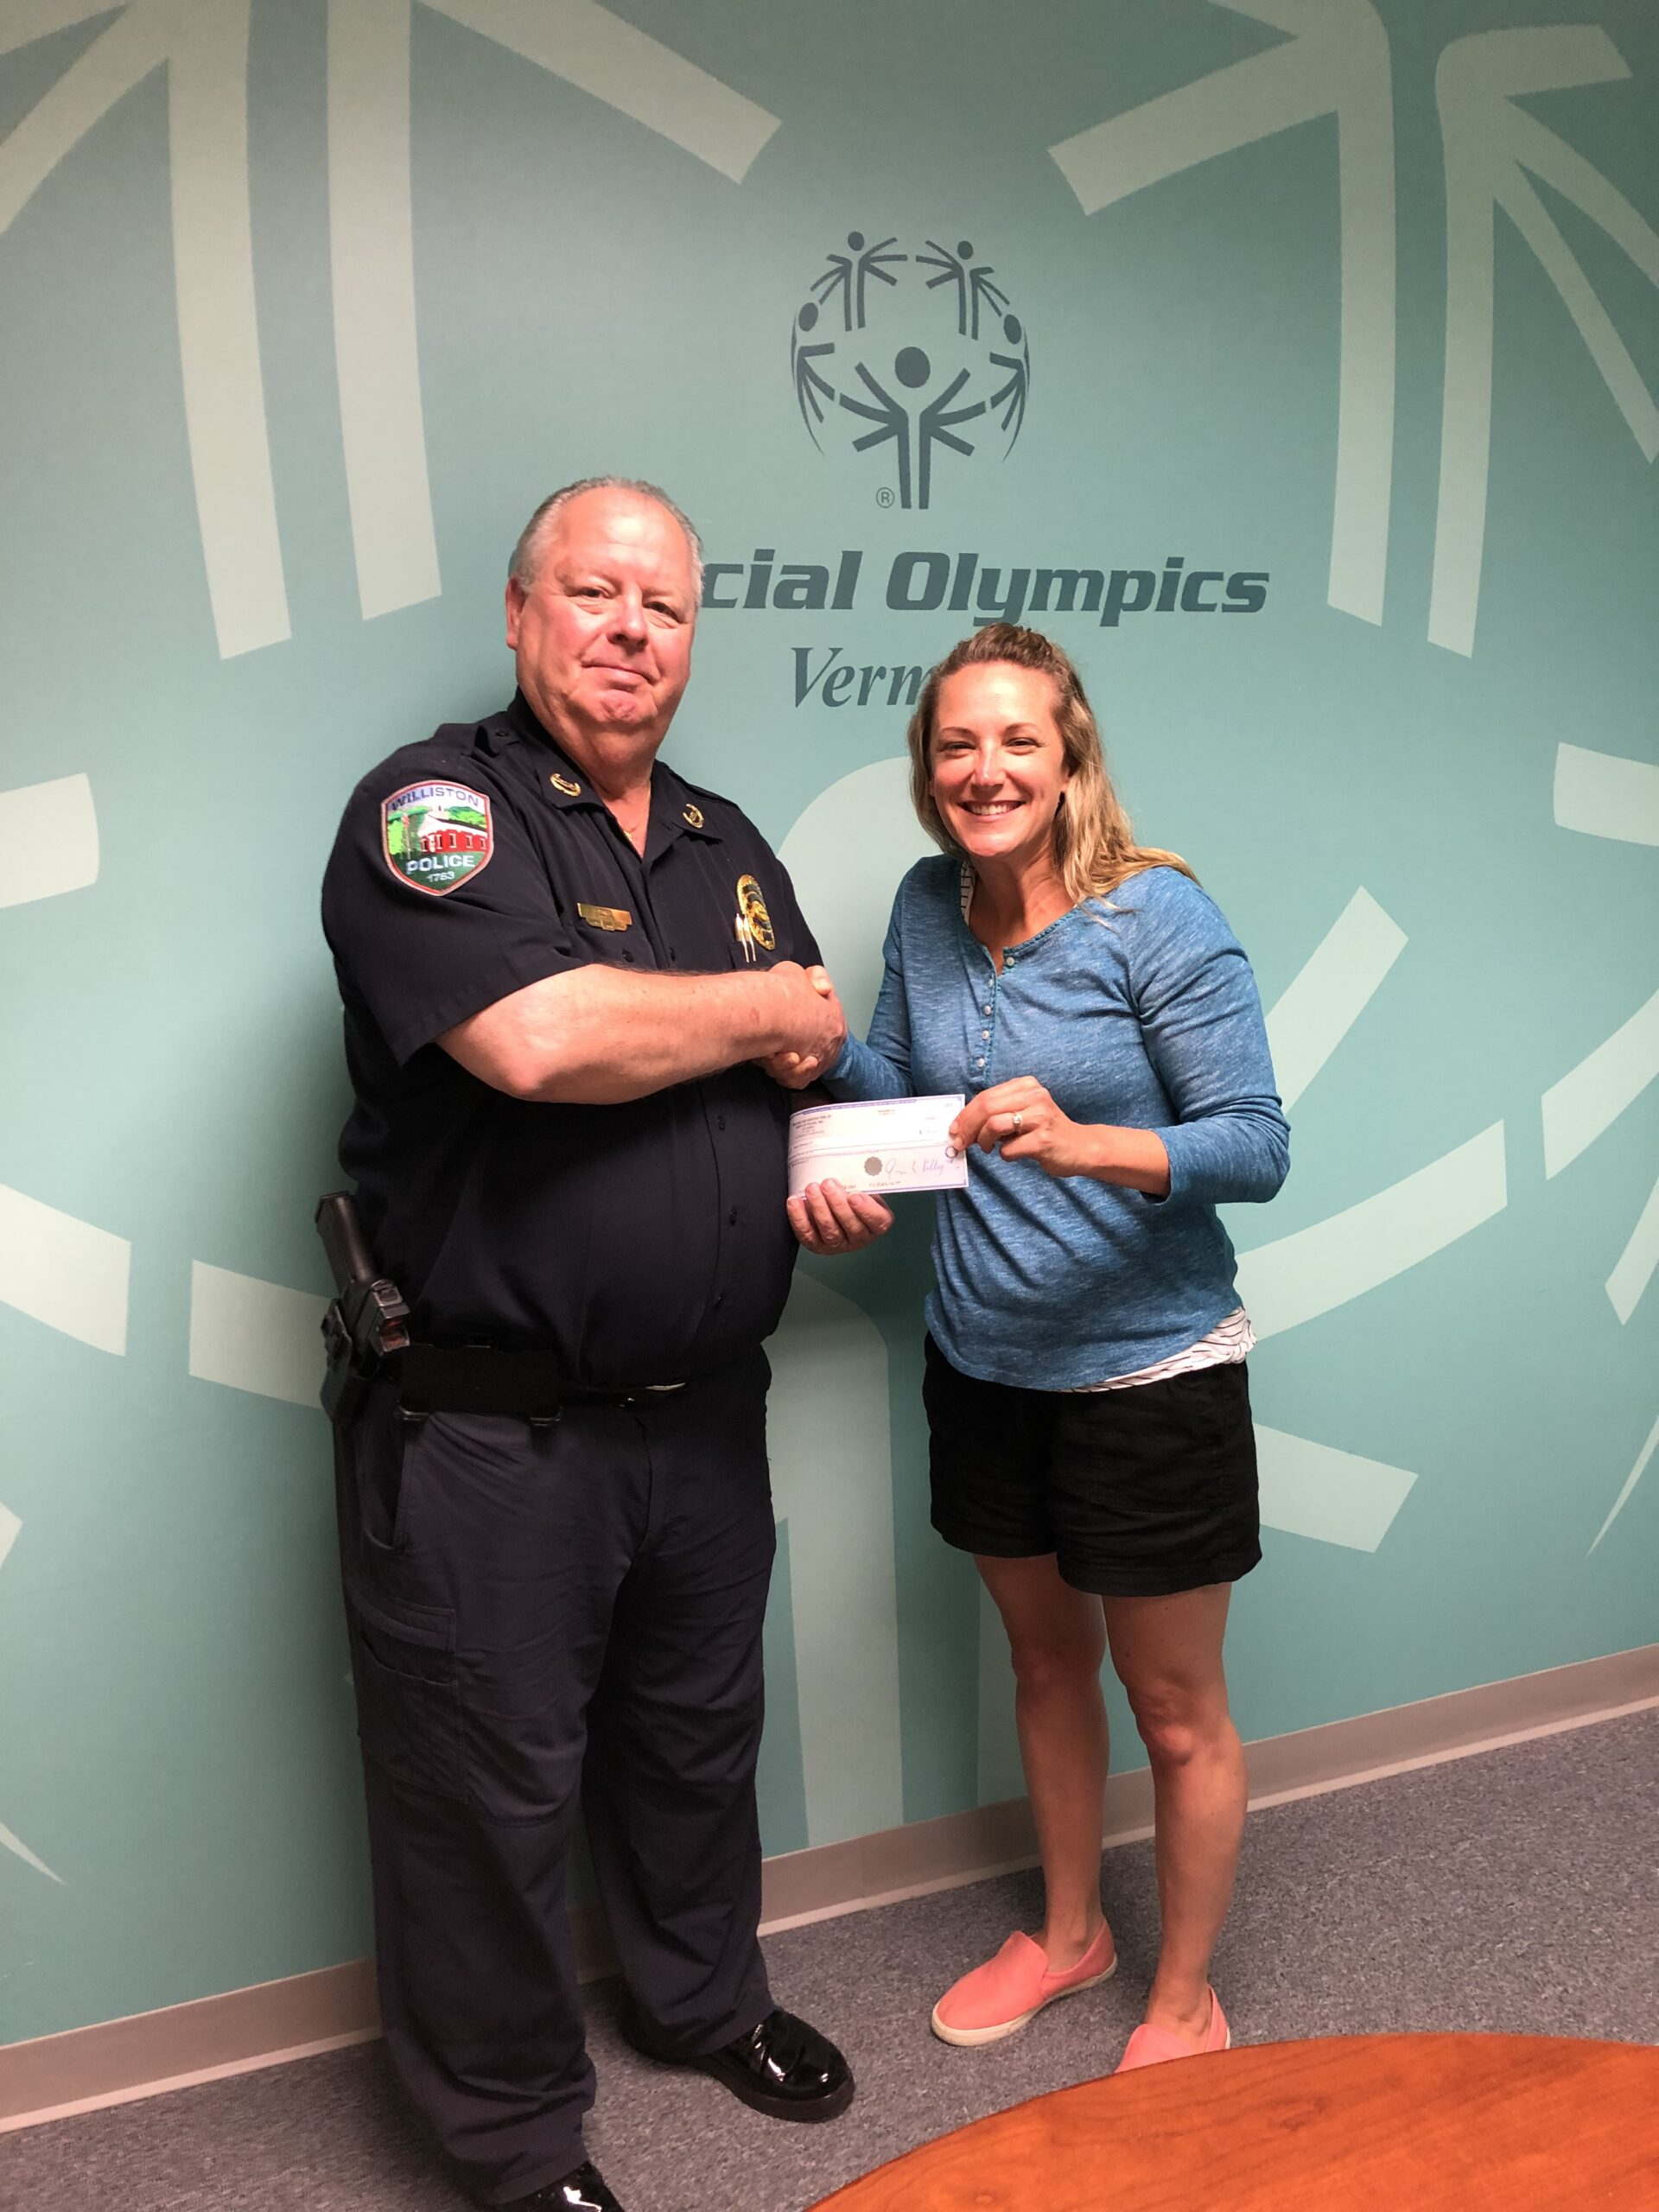 Police chief presenting donation check to woman